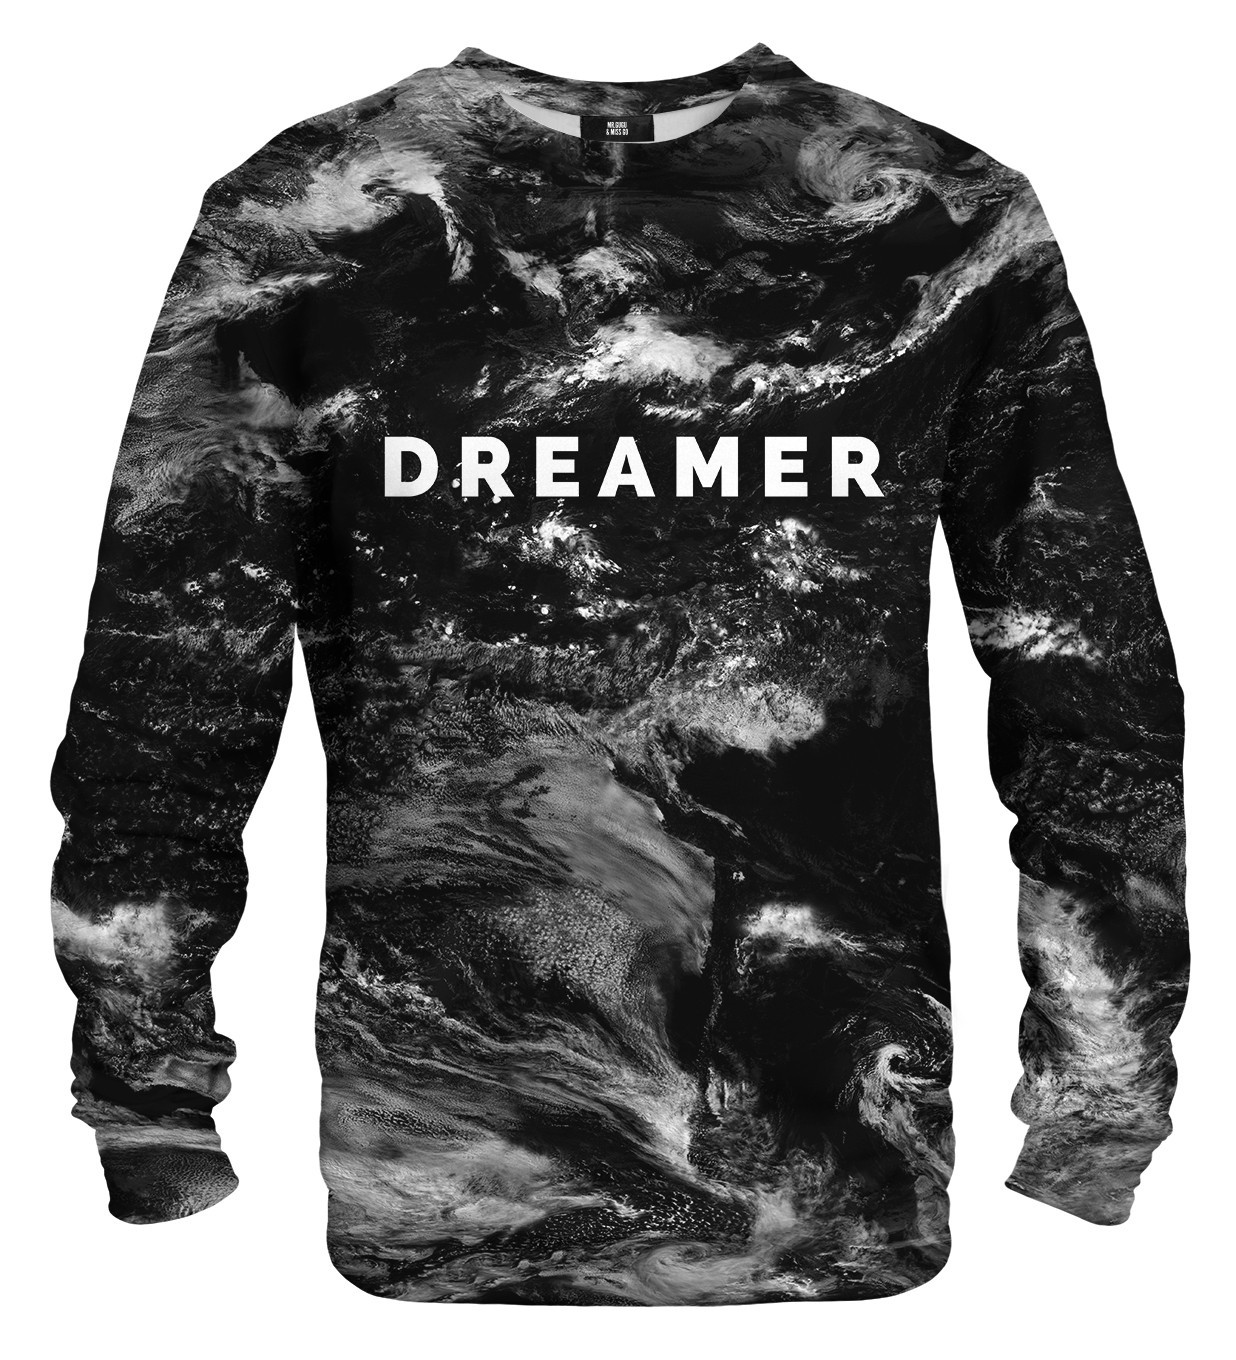 Dreamer Printed Sweatshirt | Unisex | XS-2XL | Mr.Gugu & Miss Go